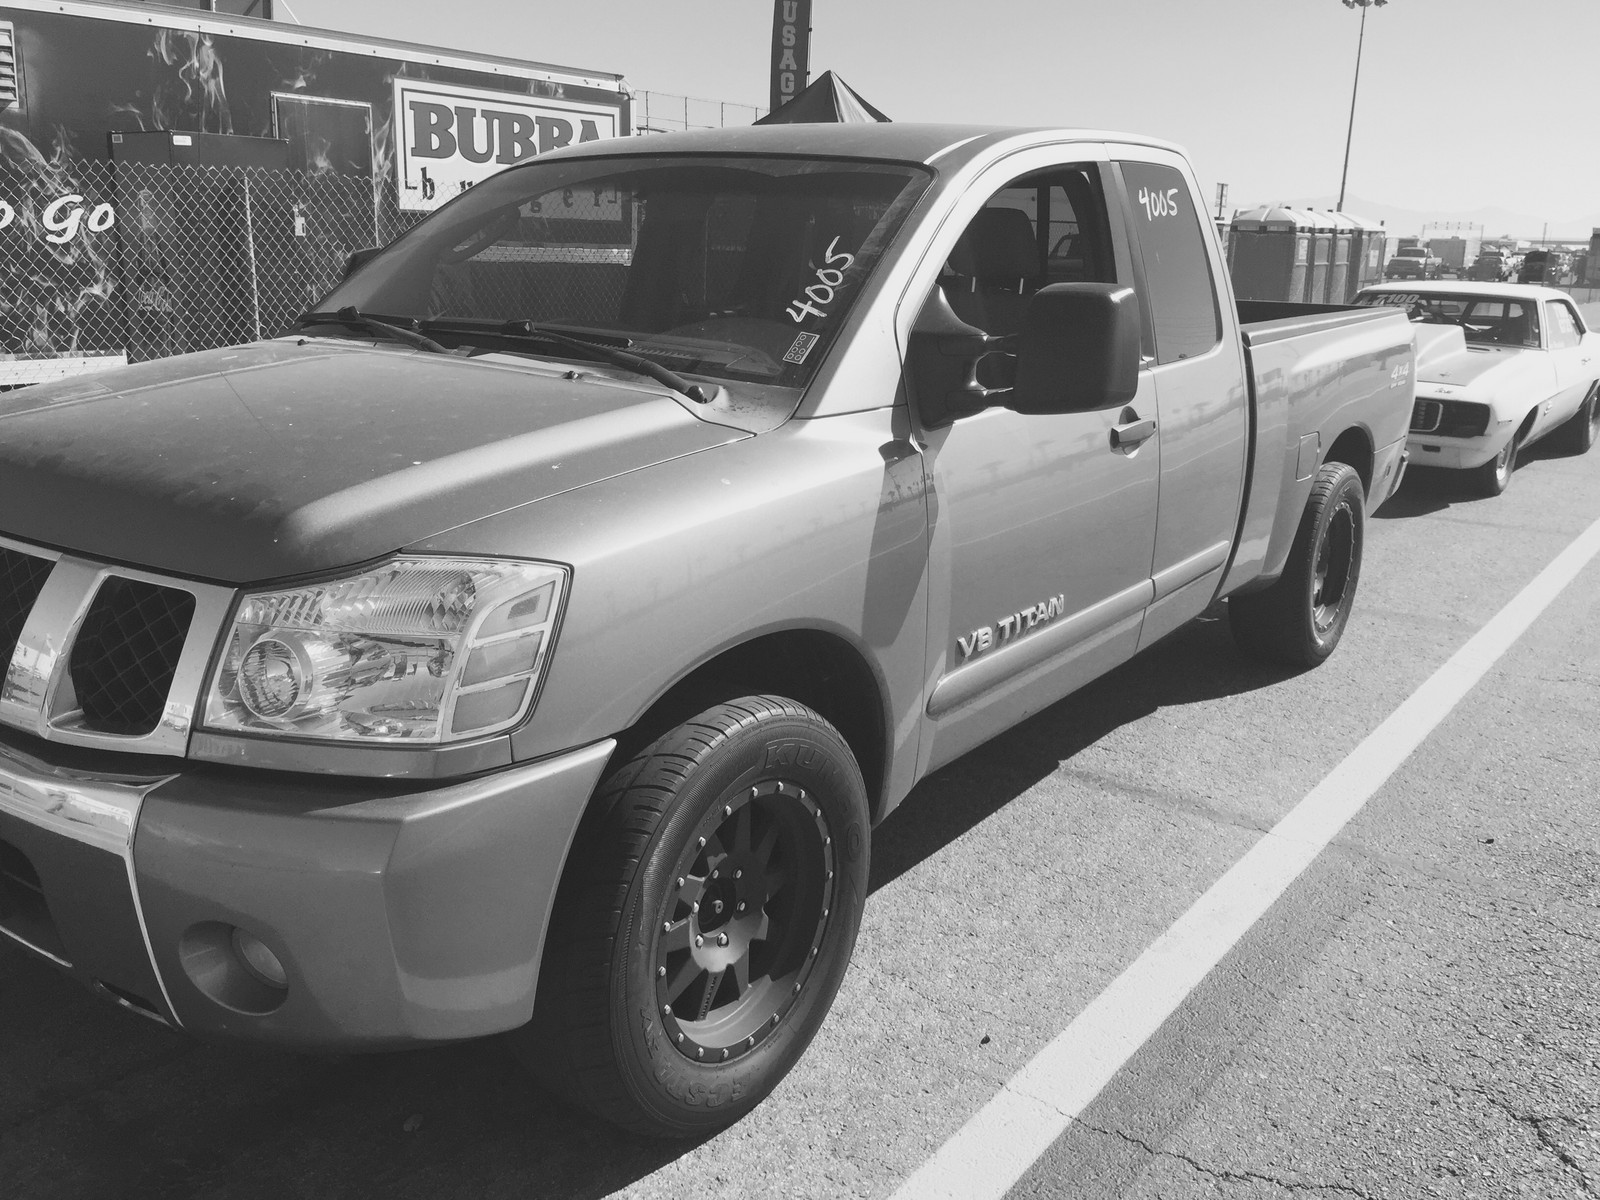 2006 Pewter Nissan Titan 4x4 Pictures Mods Upgrades Wallpaper Dragtimes Com